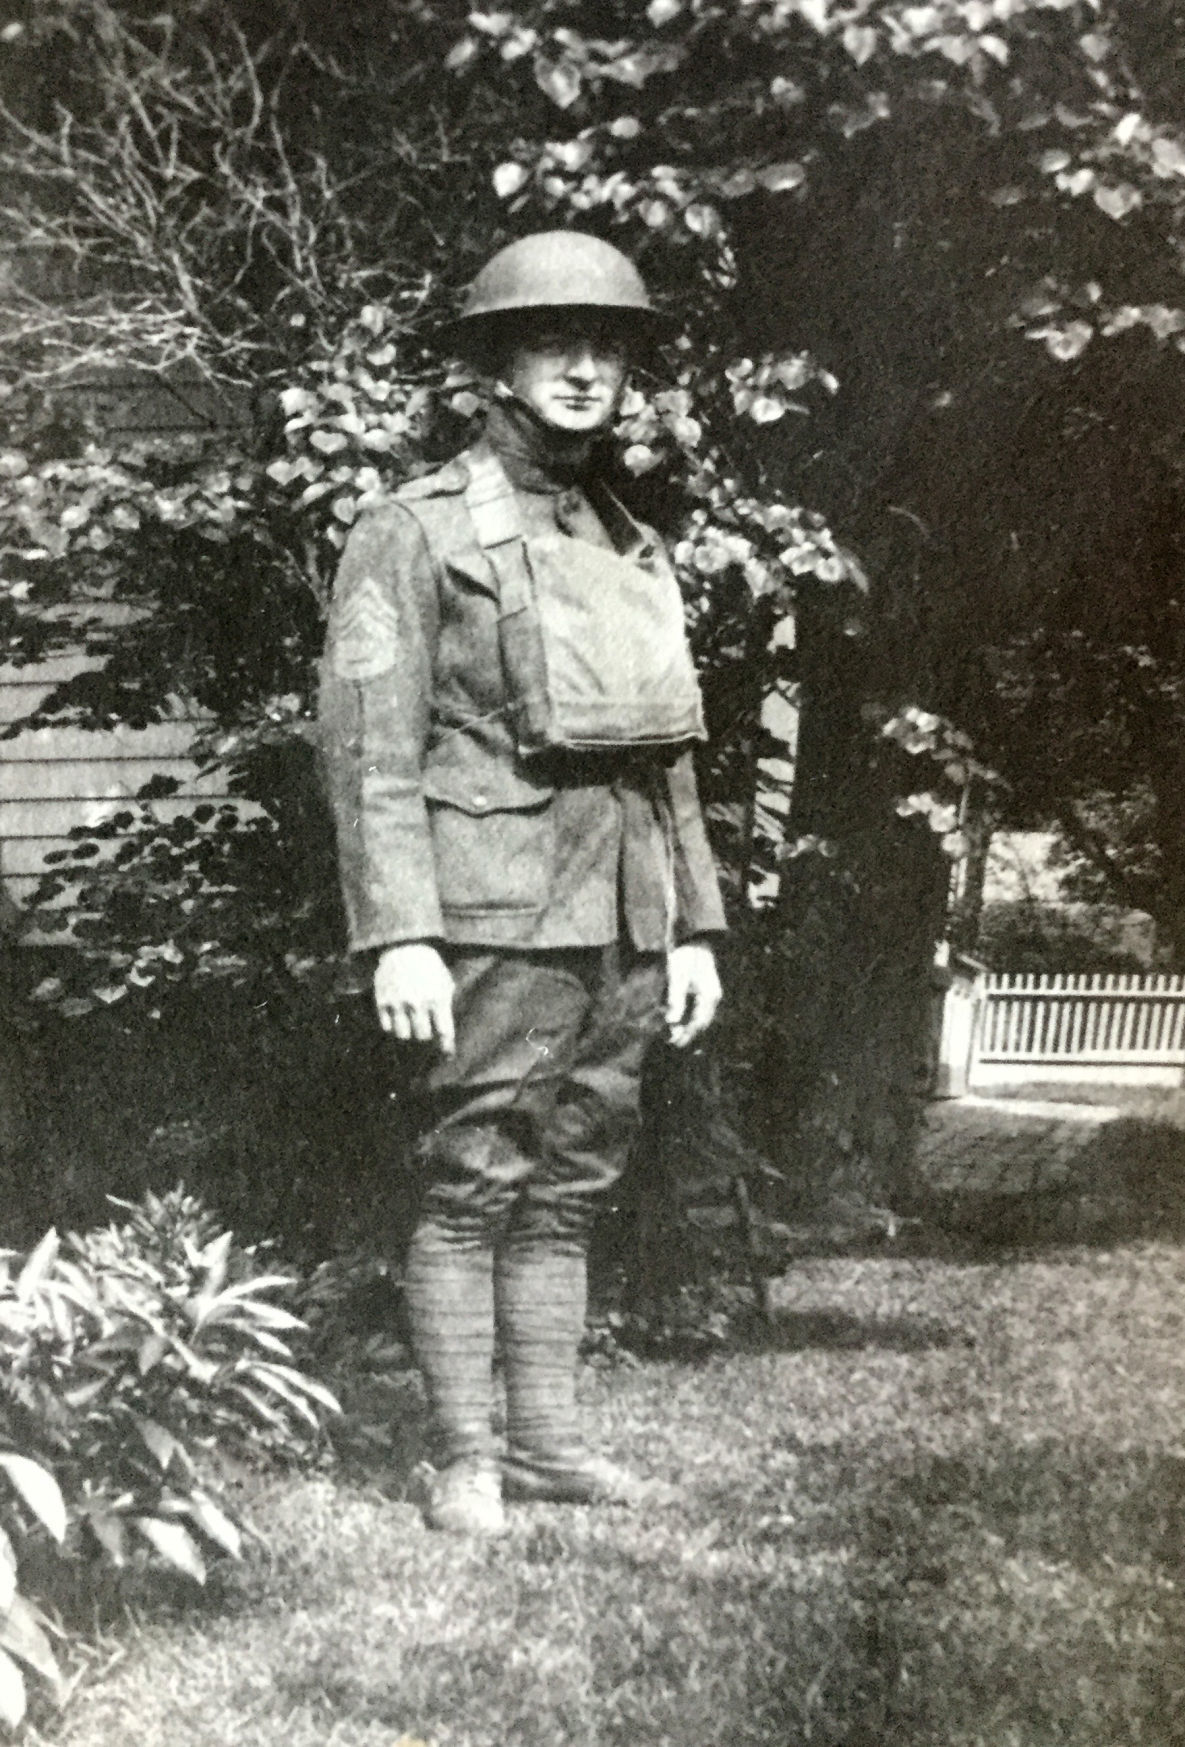 Family Stories Of Loved Ones Wwi Service Shared By Arizona Daily Star Readers Local News Tucson Com